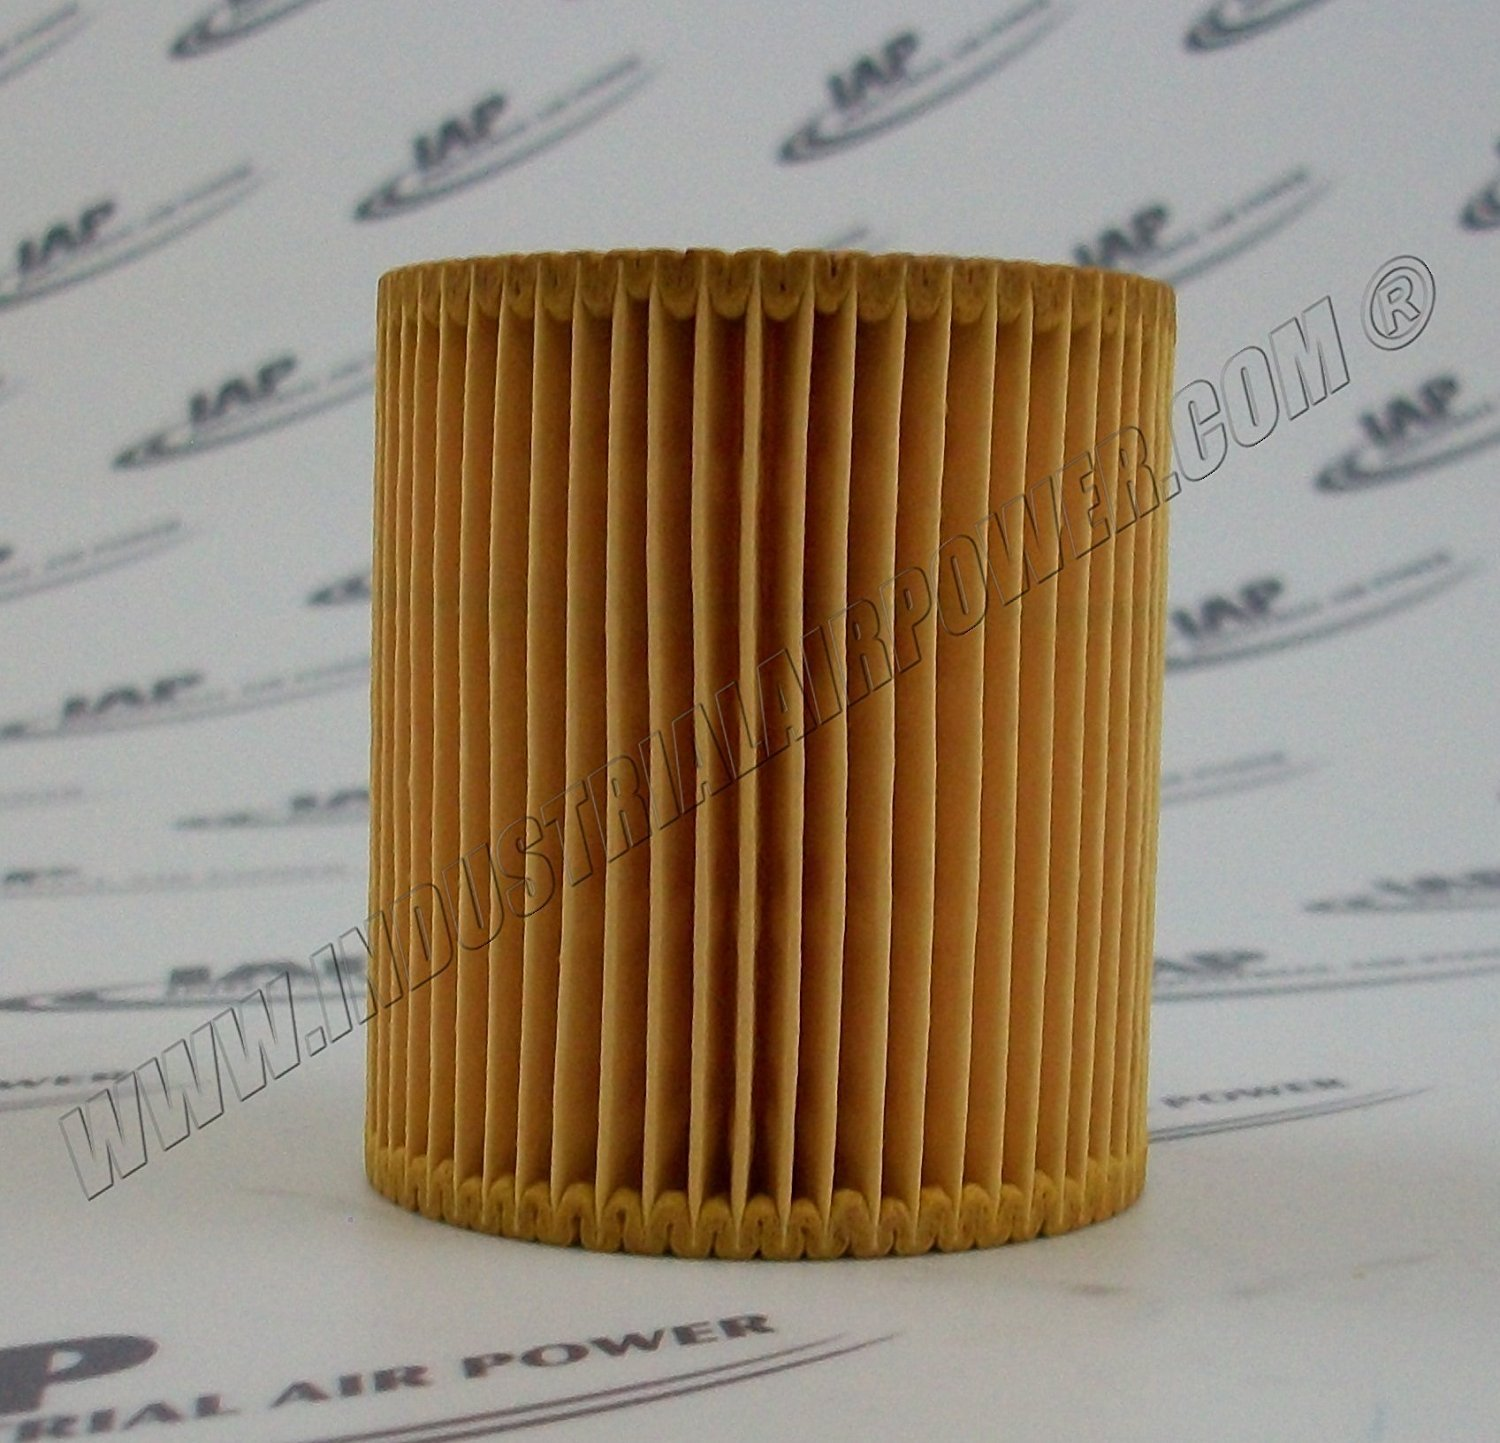 Method Machine MMT-14118 Replacement Filter 2, 4, or 10 by Mission Filter